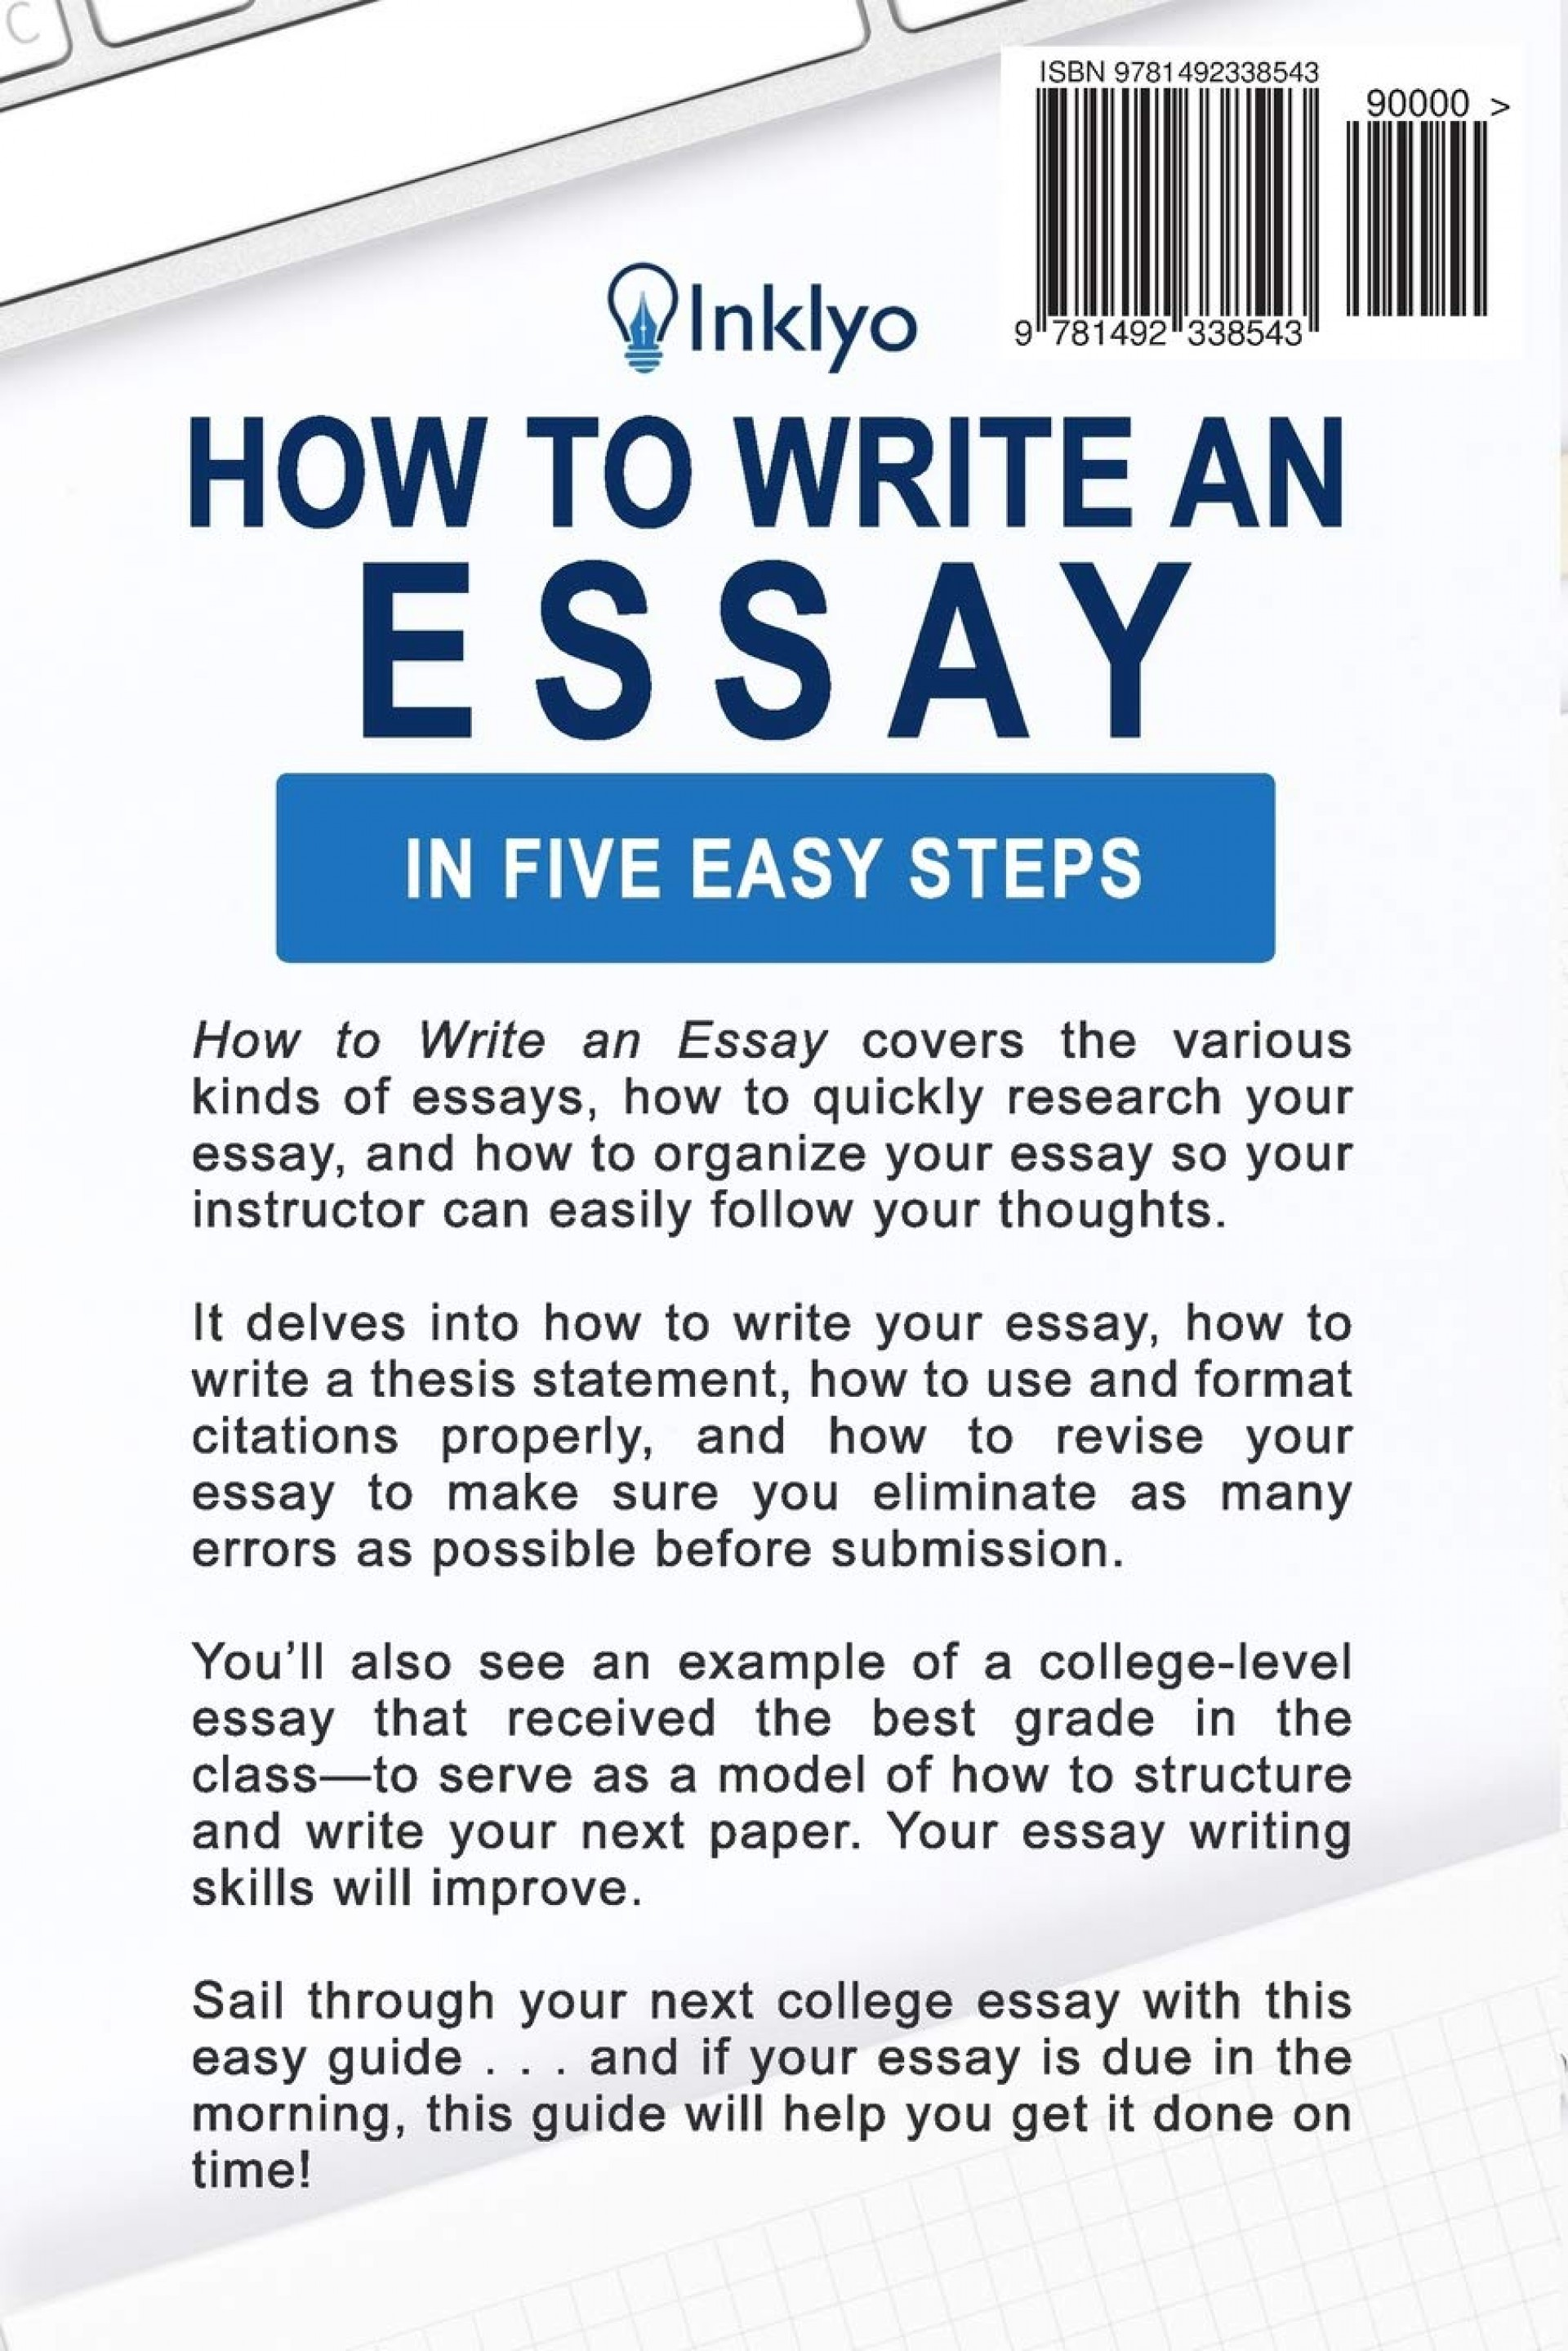 005 Essay Steps 71v7ckw5pll Formidable Writing Process To An About Yourself 1920